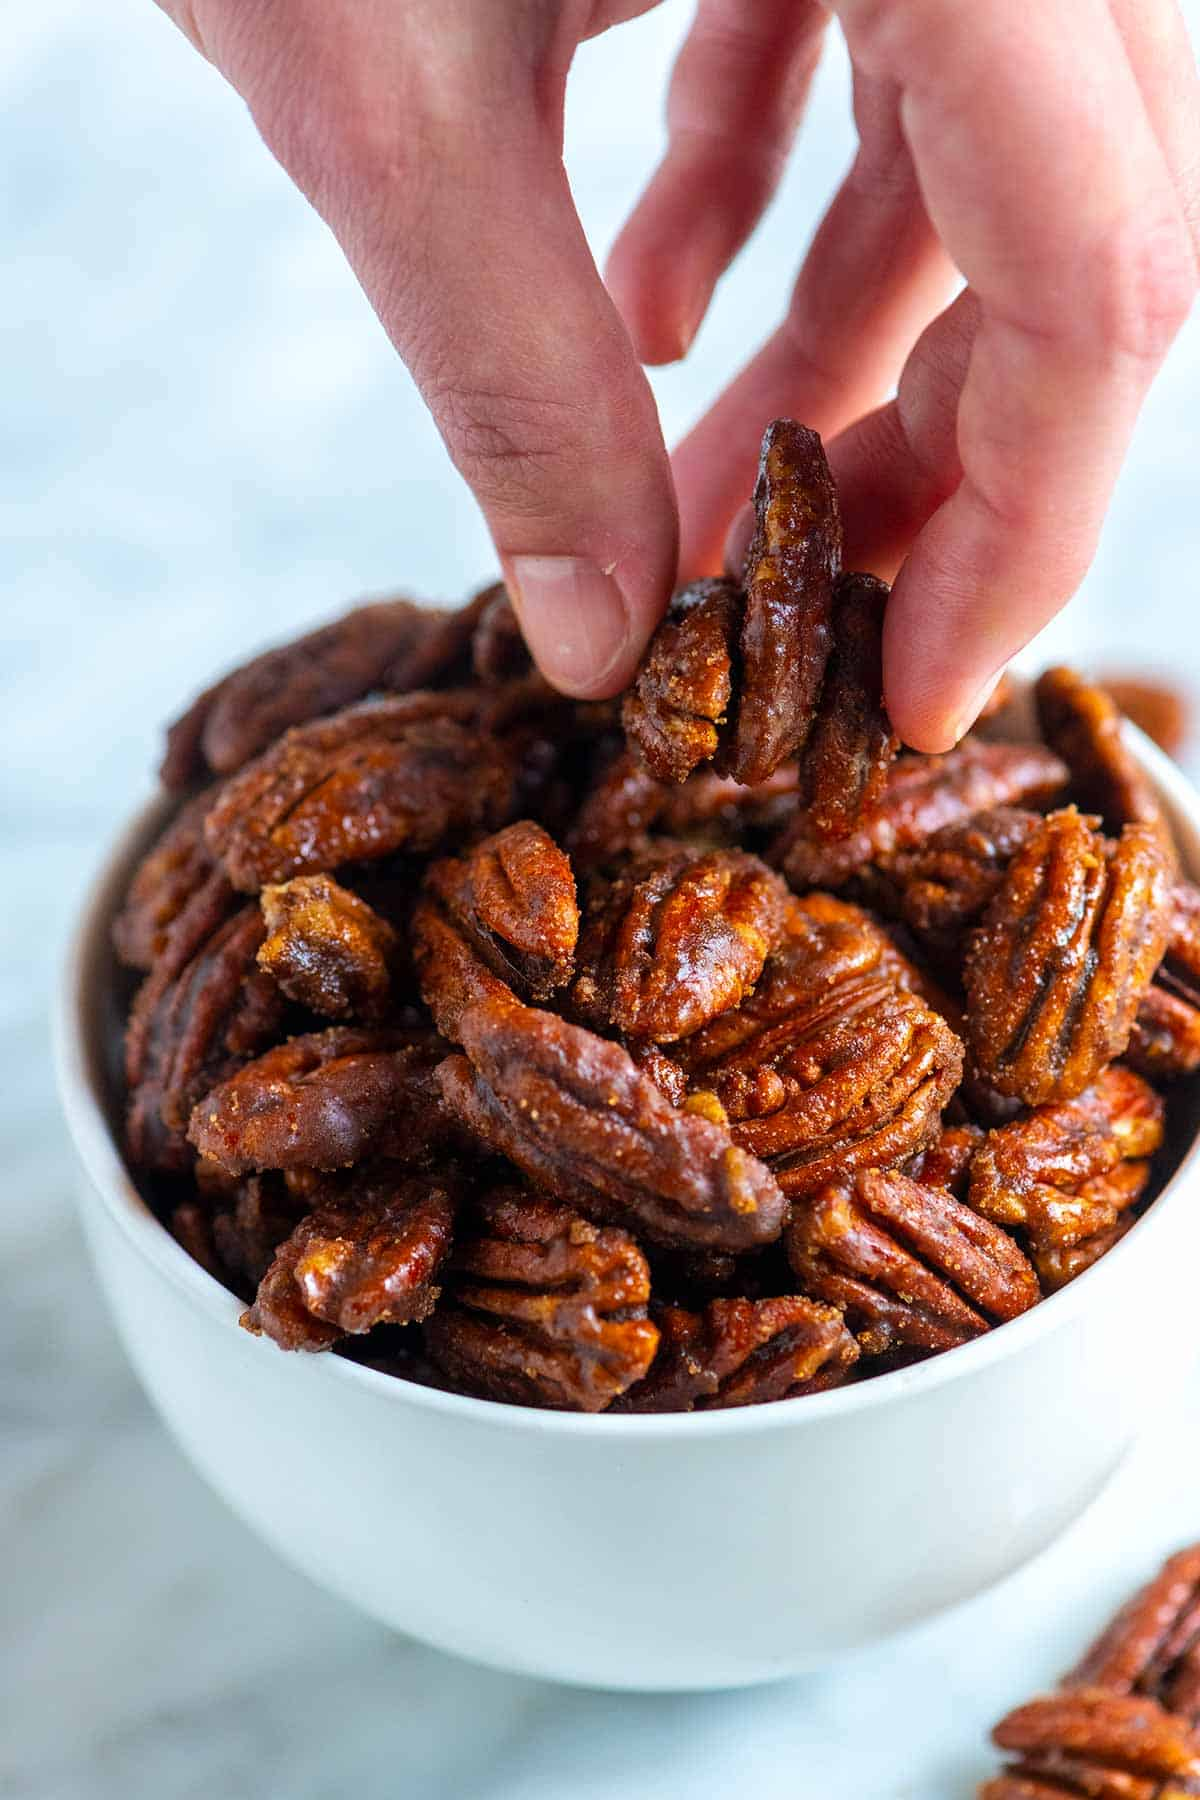 Candied Pecans with a brown sugar coating